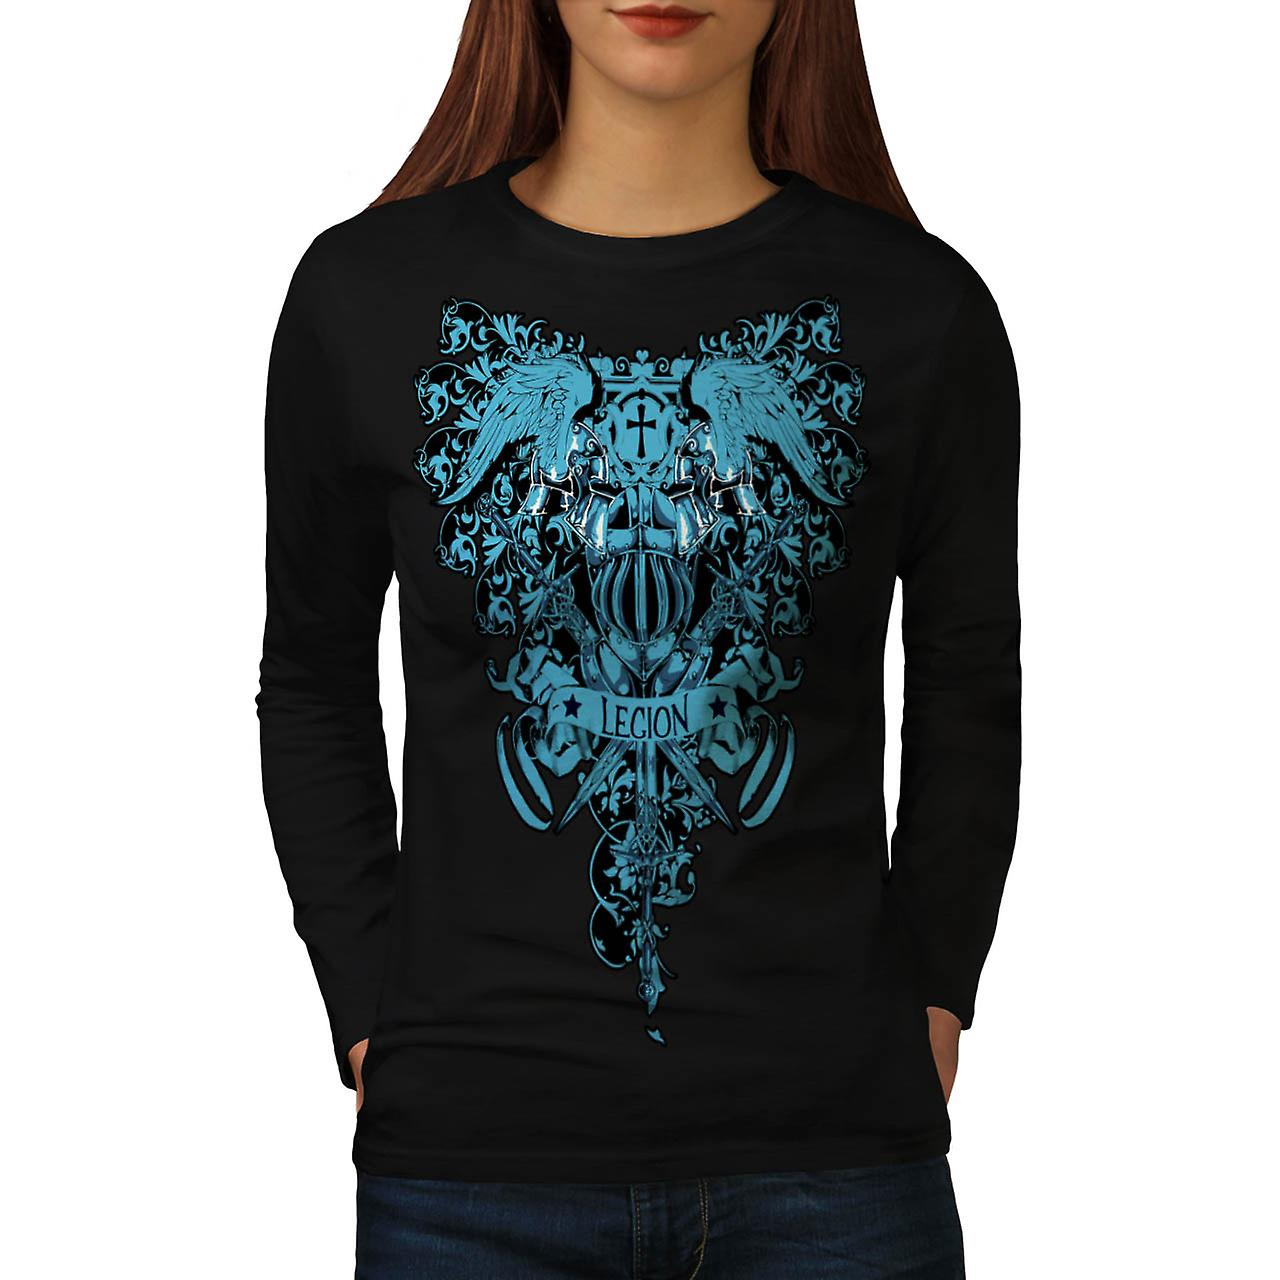 Death Legion Art Vintage Women Black Long Sleeve T-shirt | Wellcoda